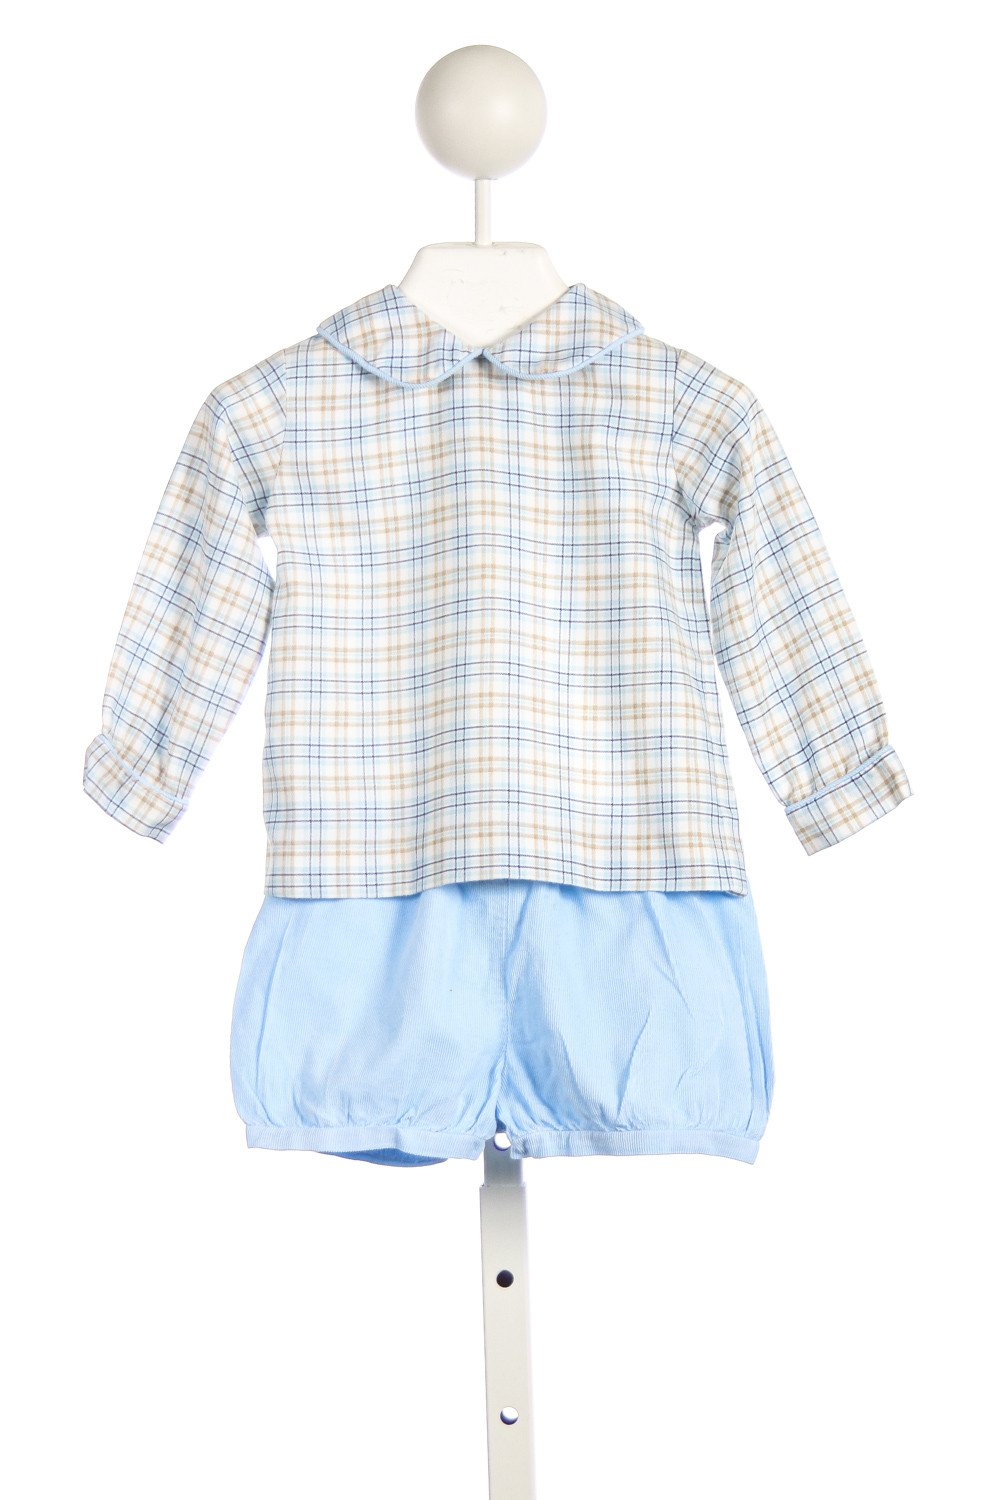 LITTLE ENGLISH BLUE AND KHAKI PLAID SHIRT WITH BLUE CORD SHORTS